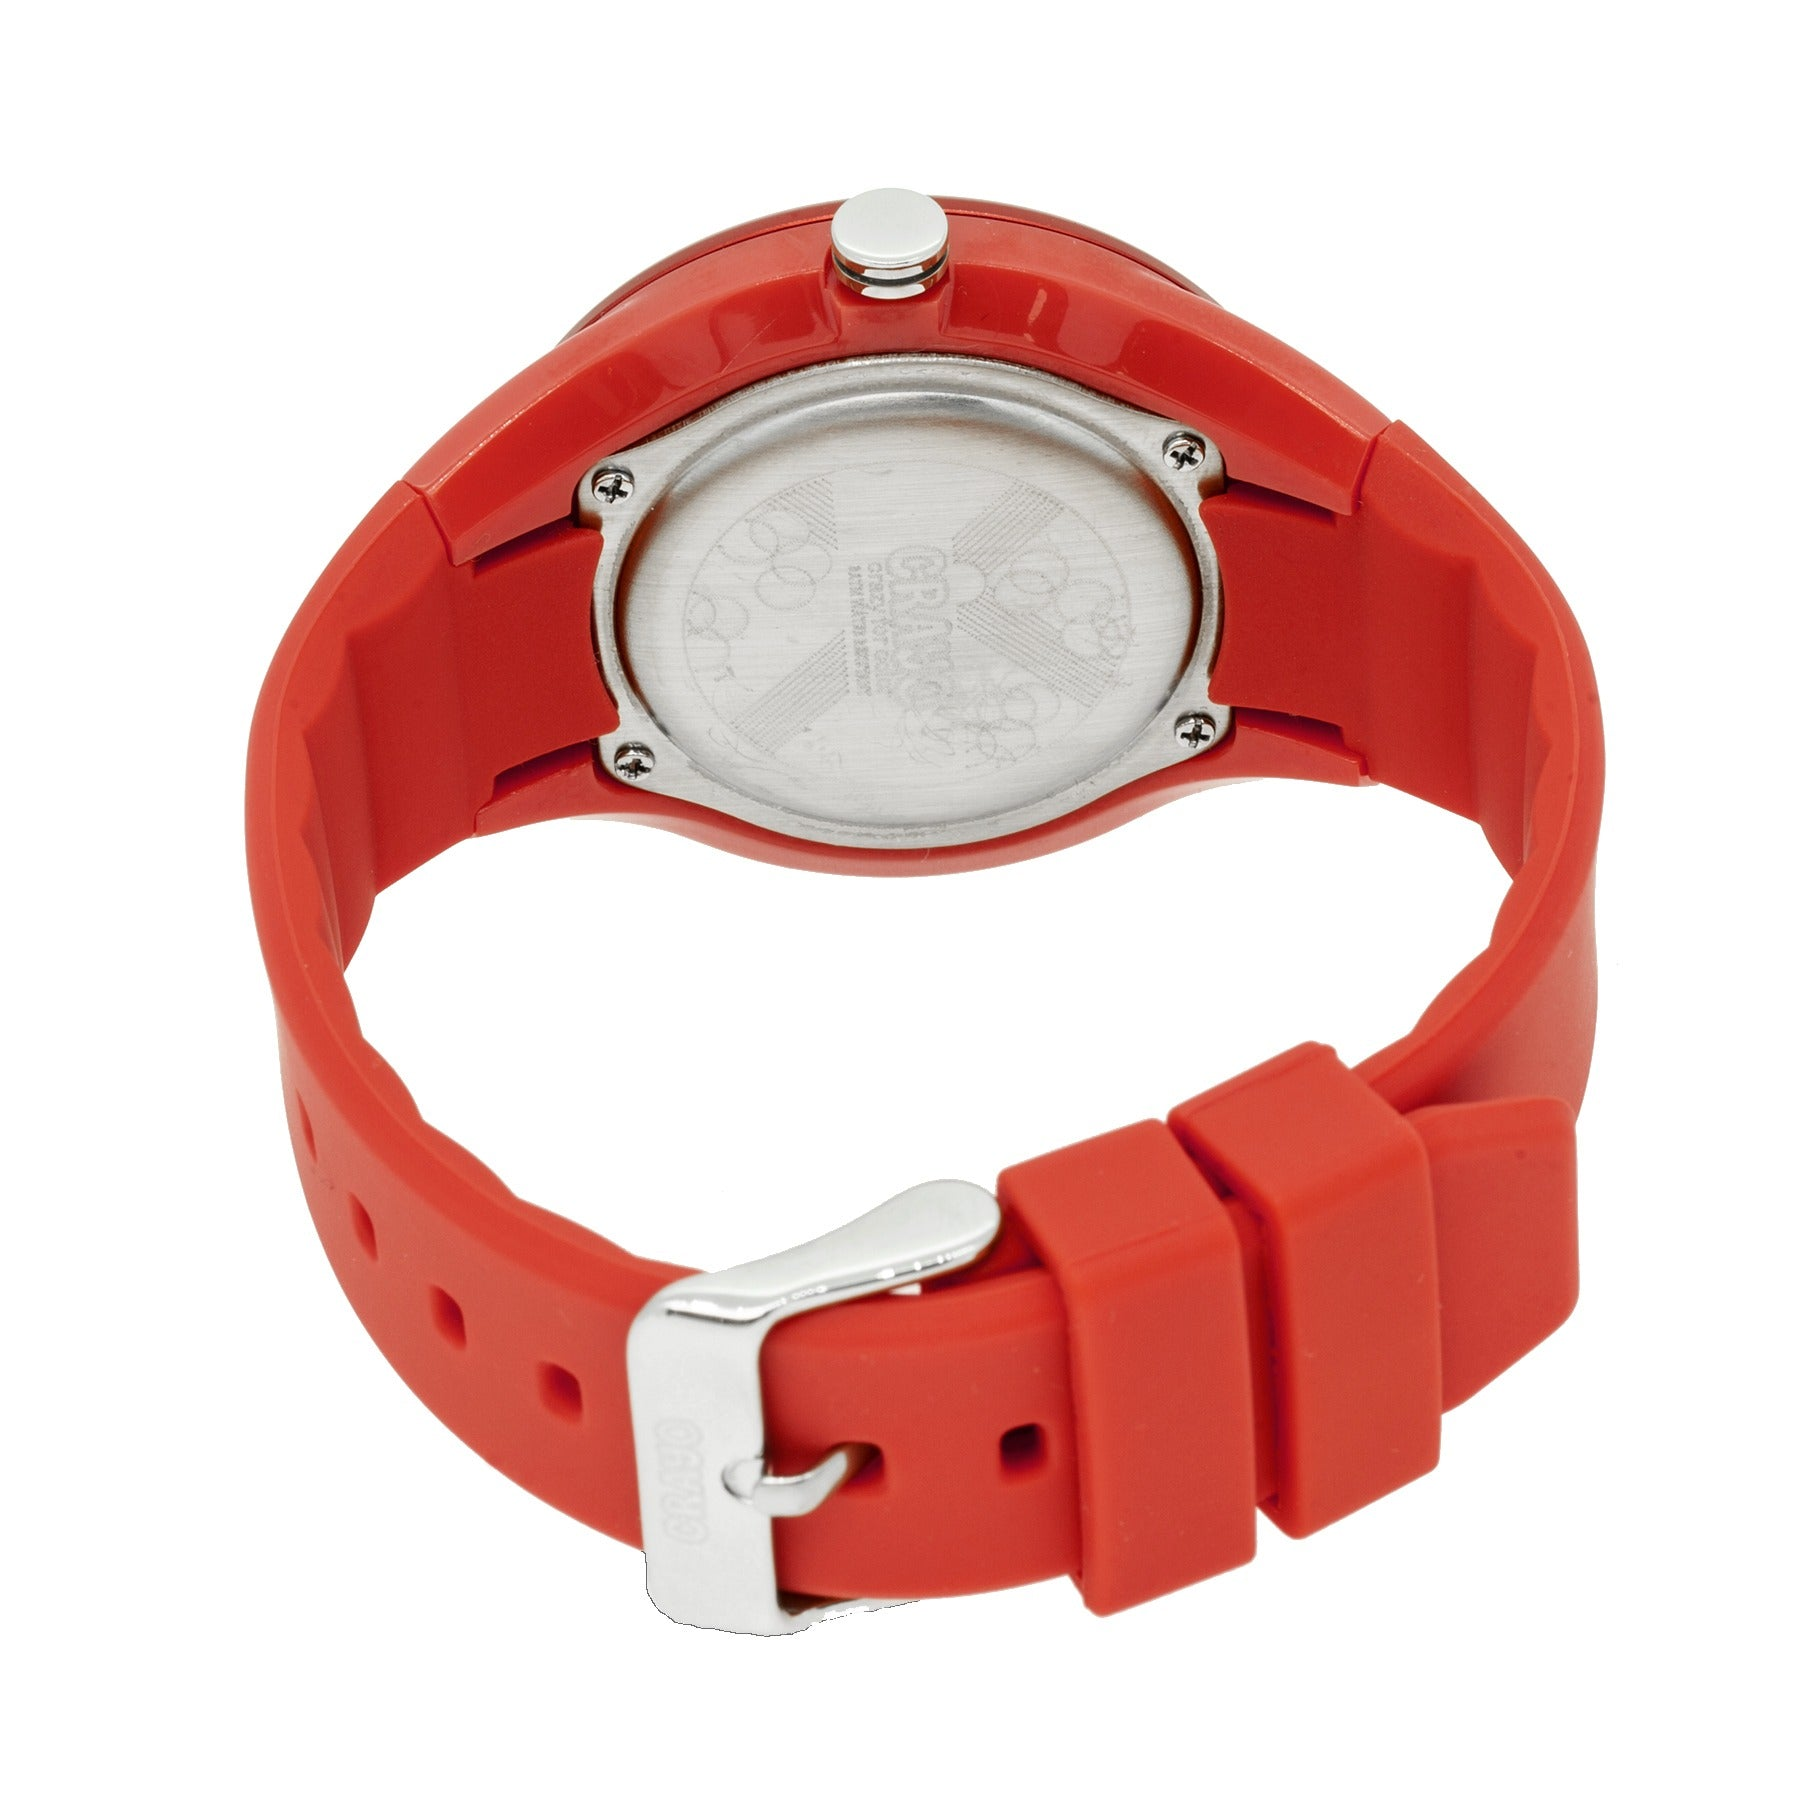 Crayo Burst Ladies Watch - Red/Yellow - CRACR3201